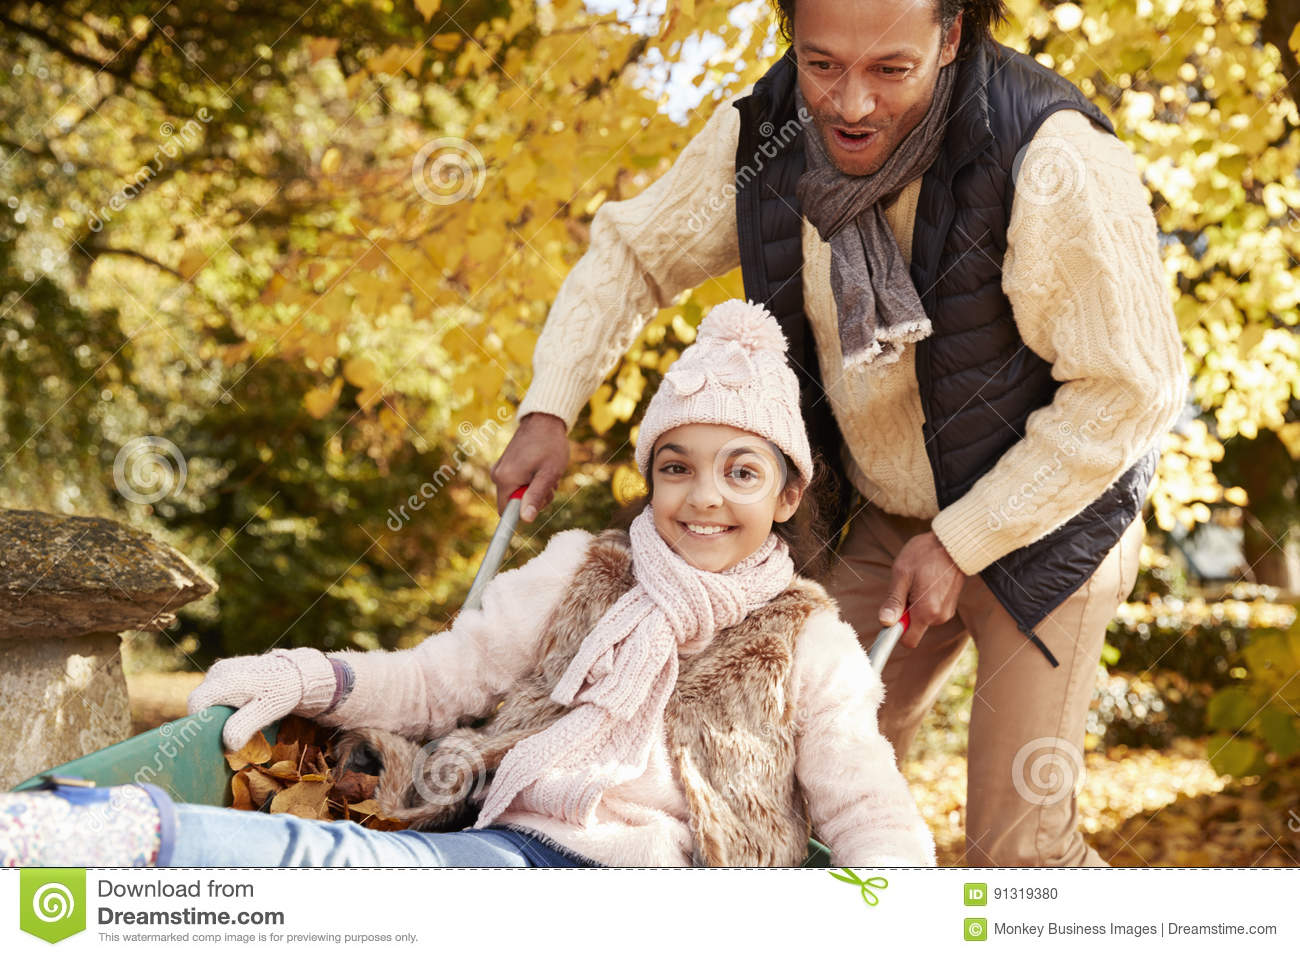 Padre In Autumn Garden Gives Daughter Ride in carriola